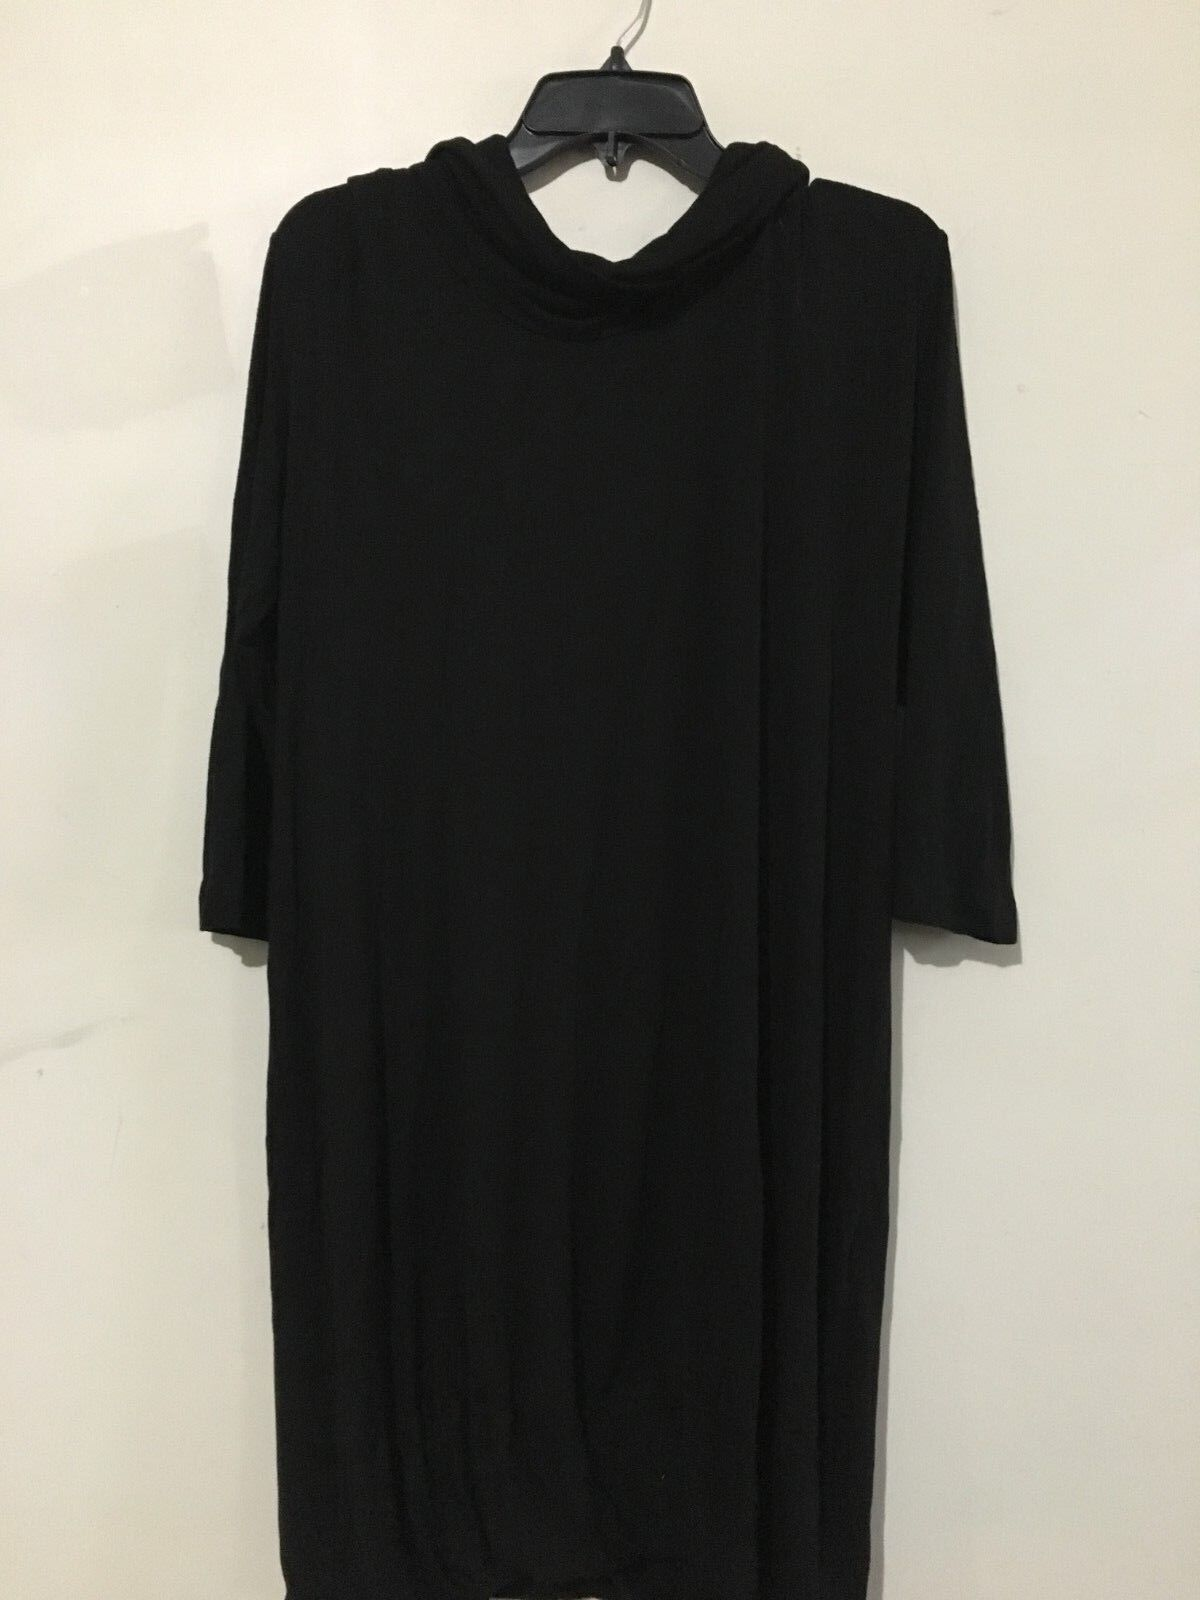 Barbara Di Davide  Milano Stylish schwarz Größe M Turtleneck Dress damen